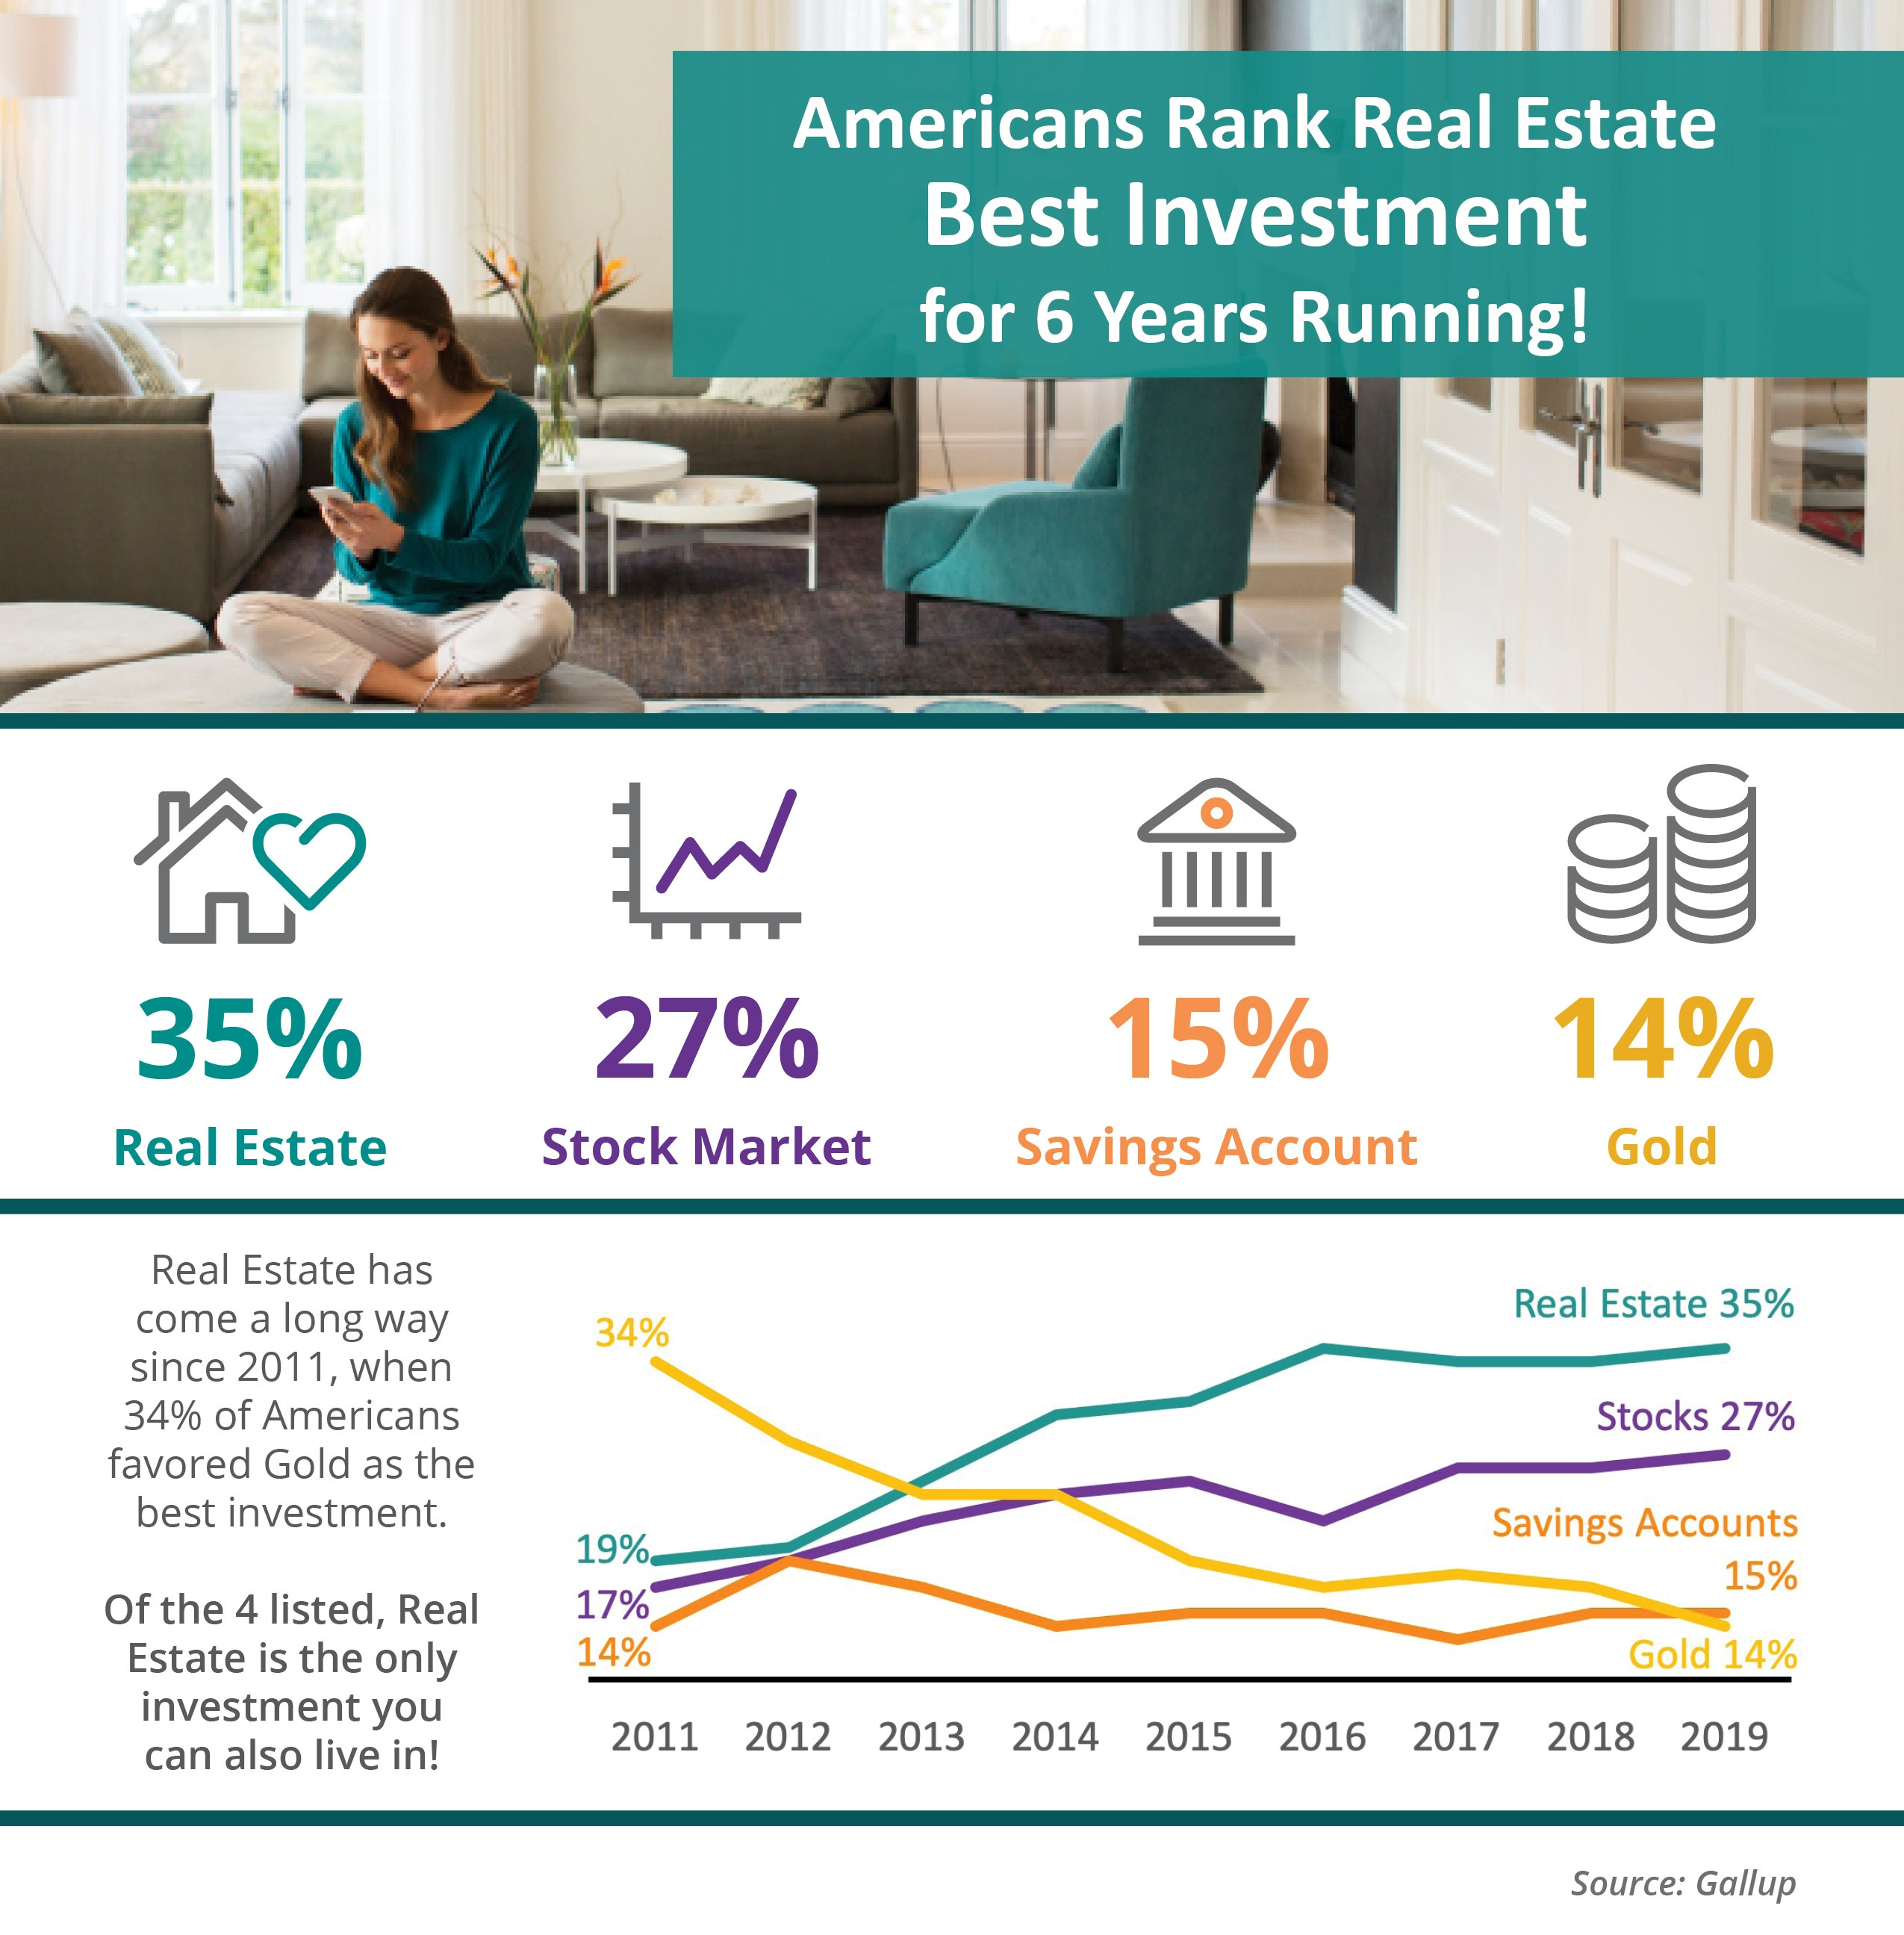 Real Estate Best Investment 6 Years Running